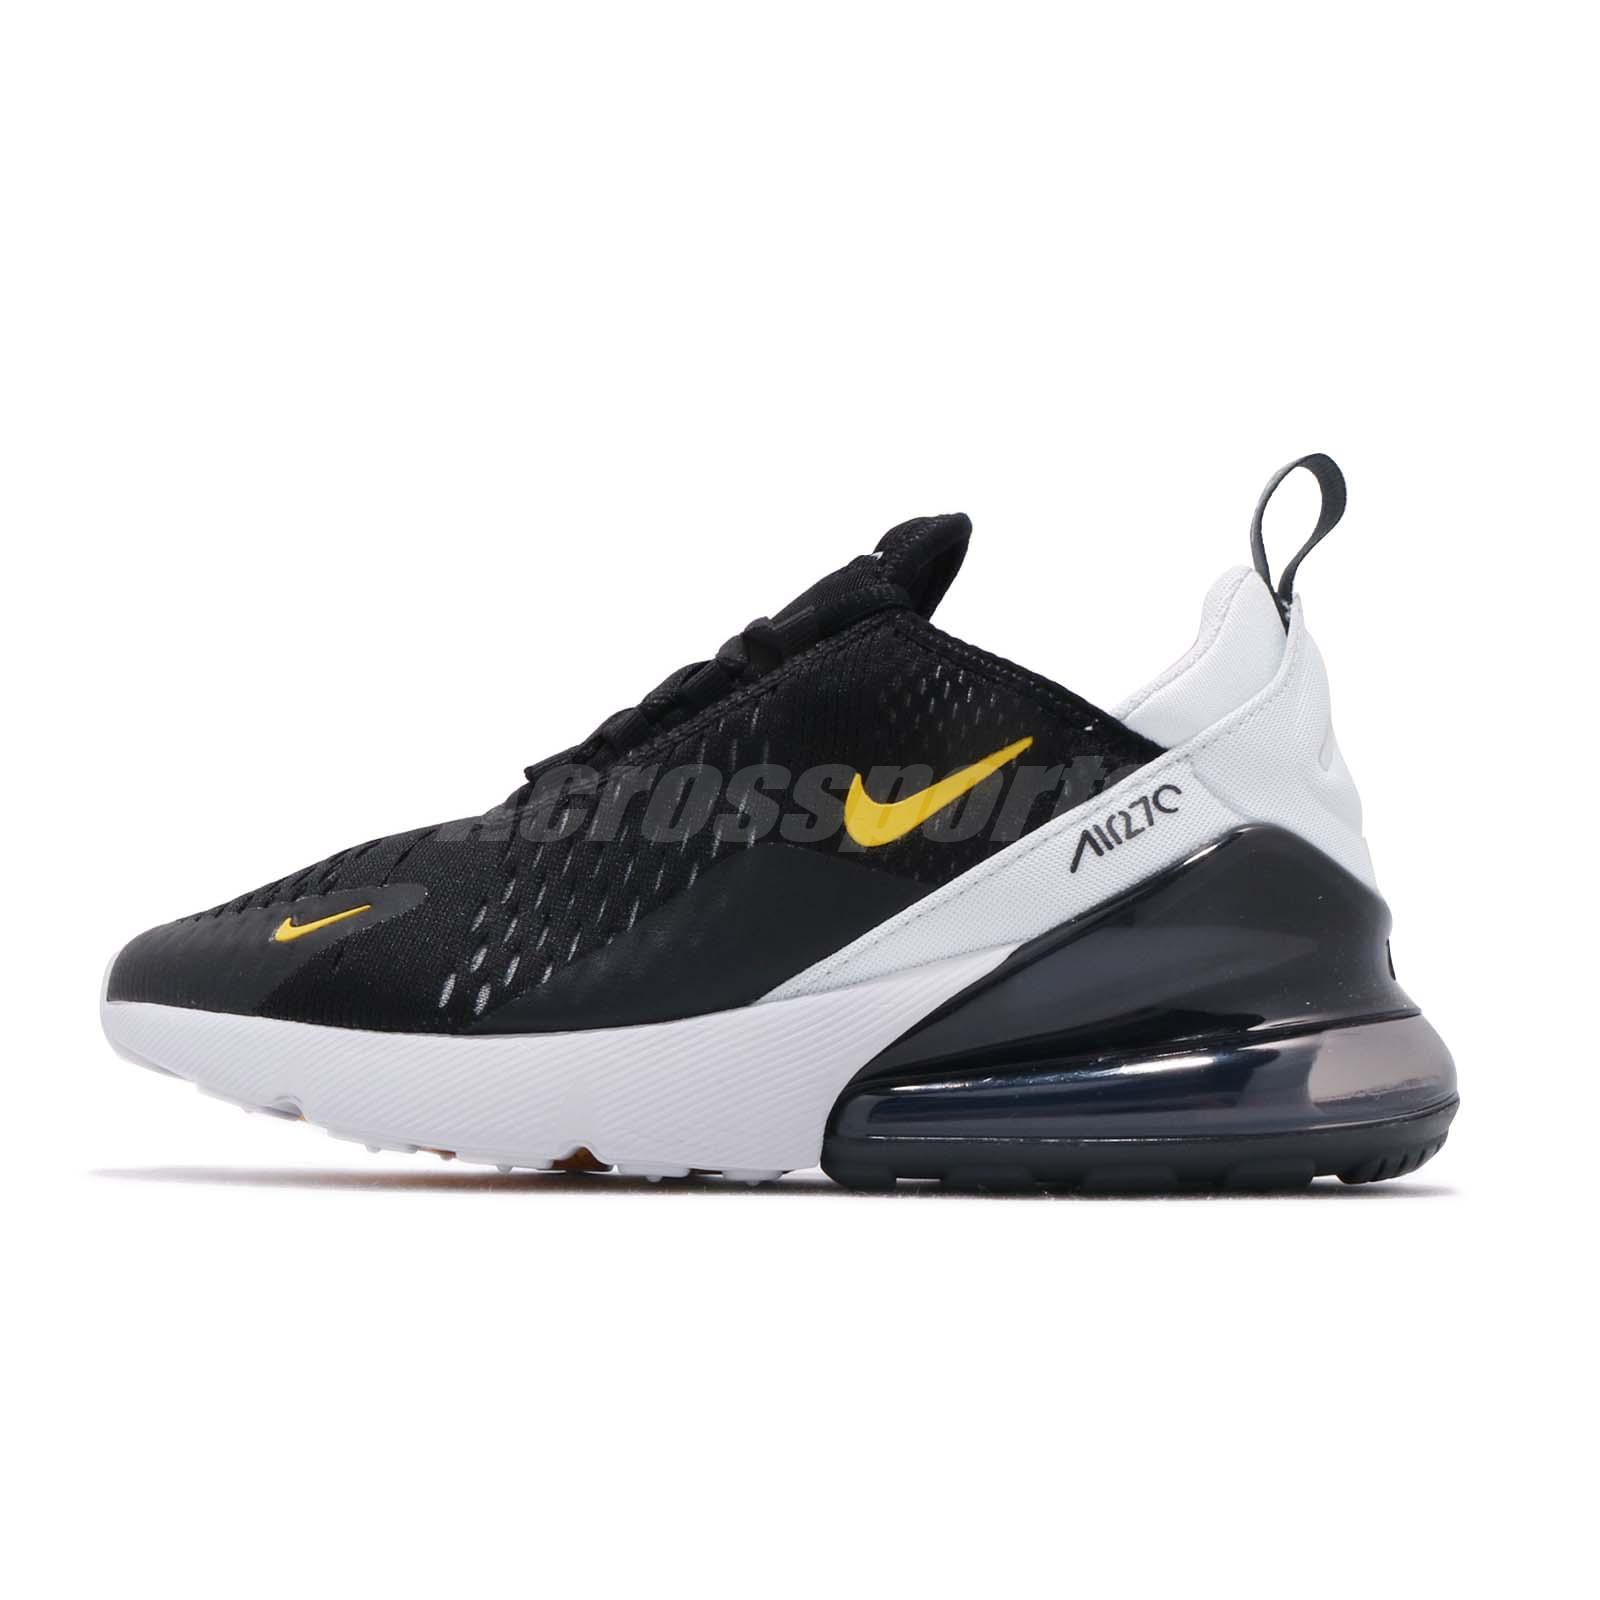 Details about Nike Air Max 270 GS Black Amarillo Yellow Kid Youth Women Shoes 943345 016